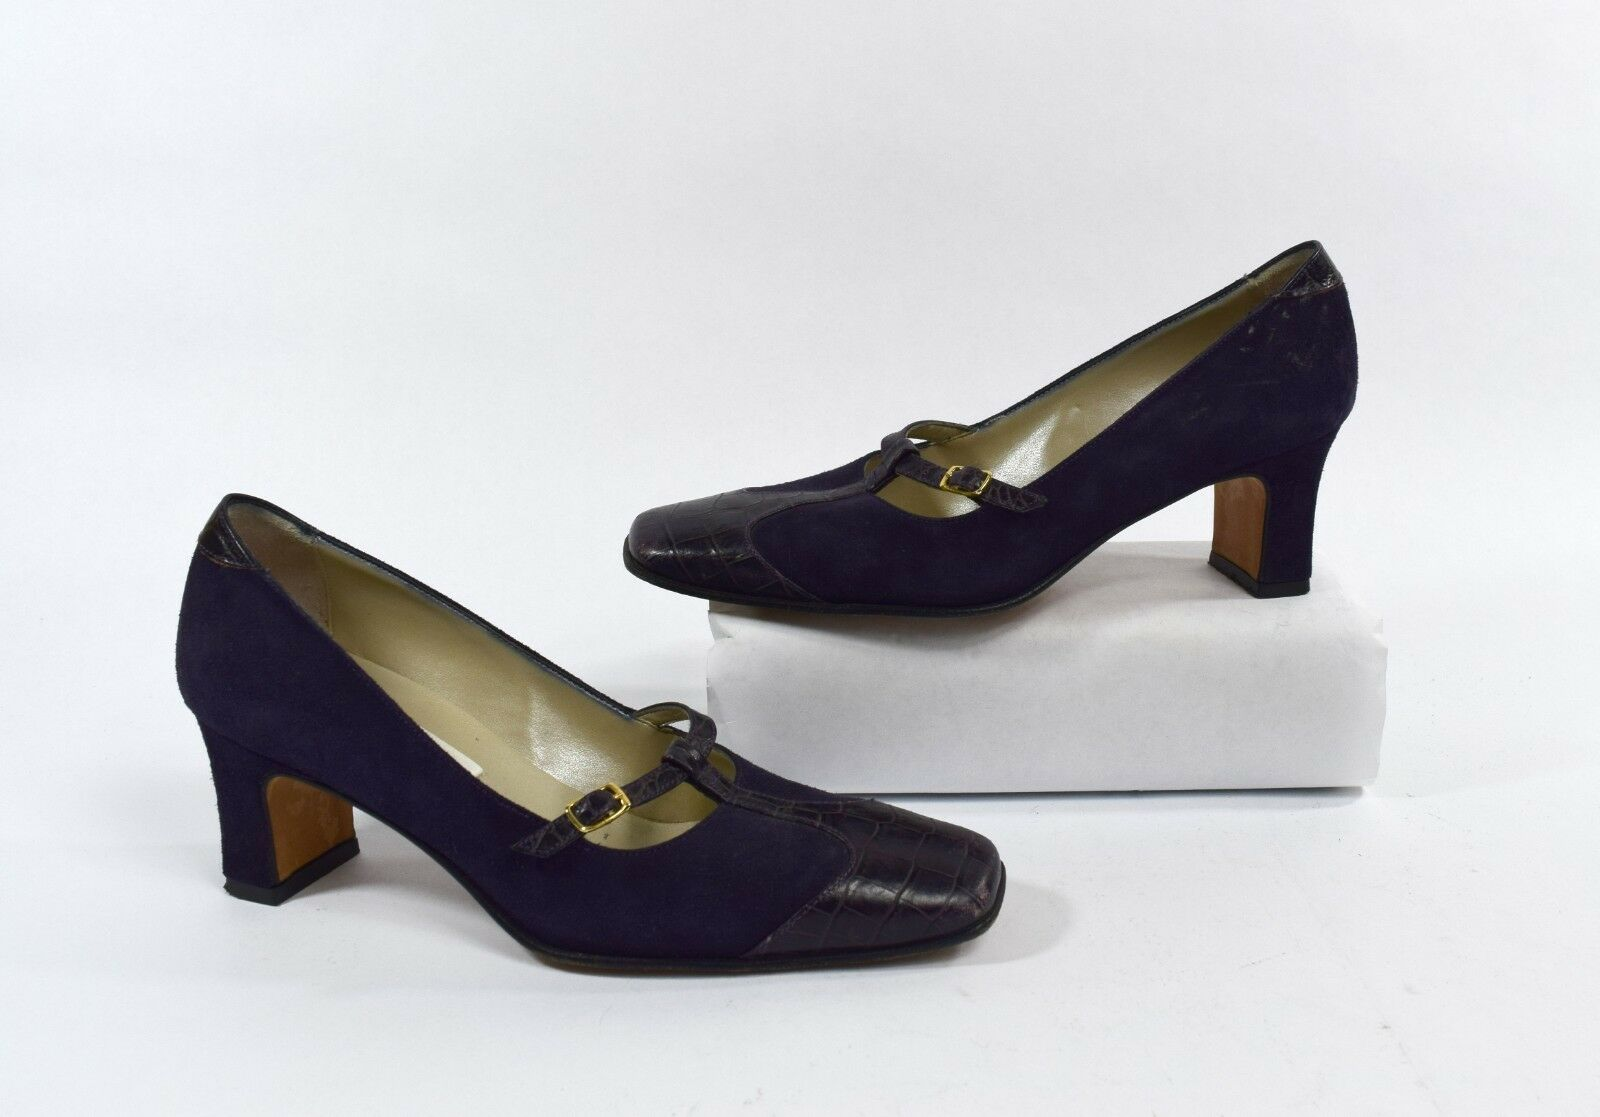 Talbots Vintage 80s Purple Leather T-strap Pump Heels Size 5M Made in Italy